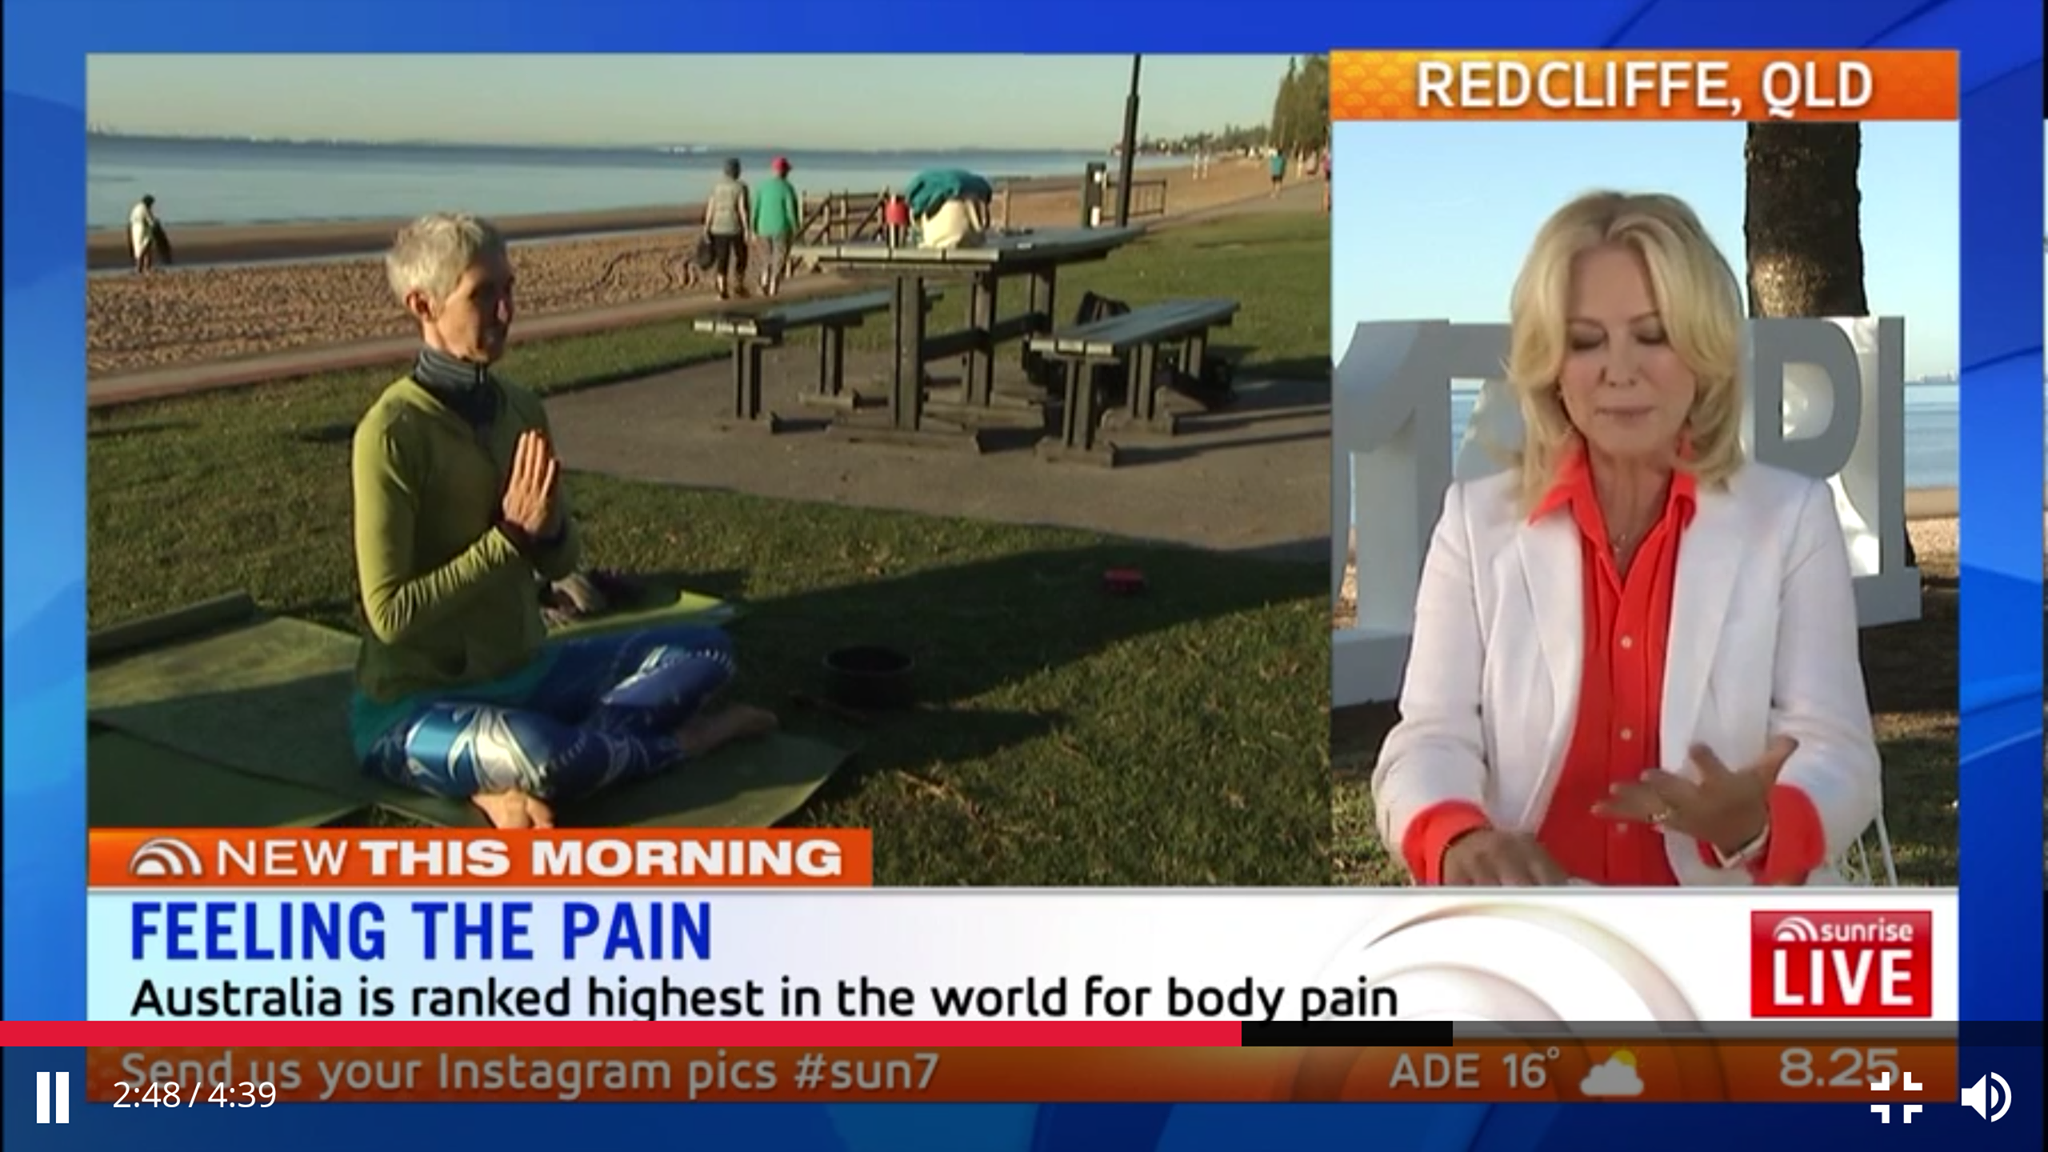 Click on the image above to see the segment on Sunrise that morning